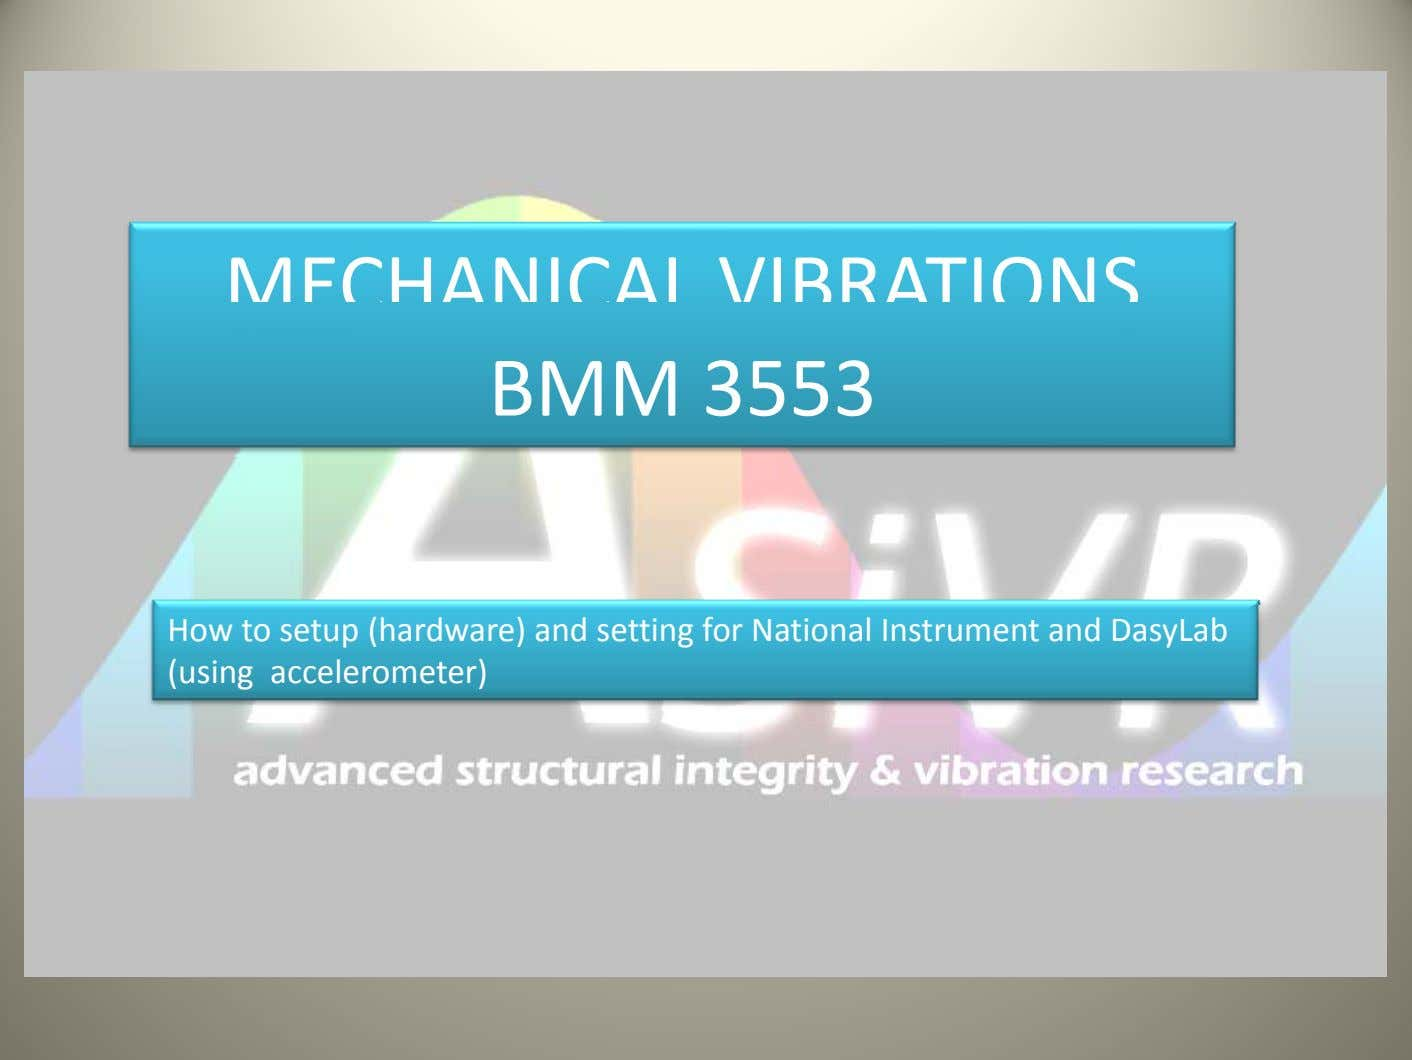 MECHANICAL VIBRATIONS BMM 3553 How to setup (hardware) and setting for National Instrument and DasyLab (using